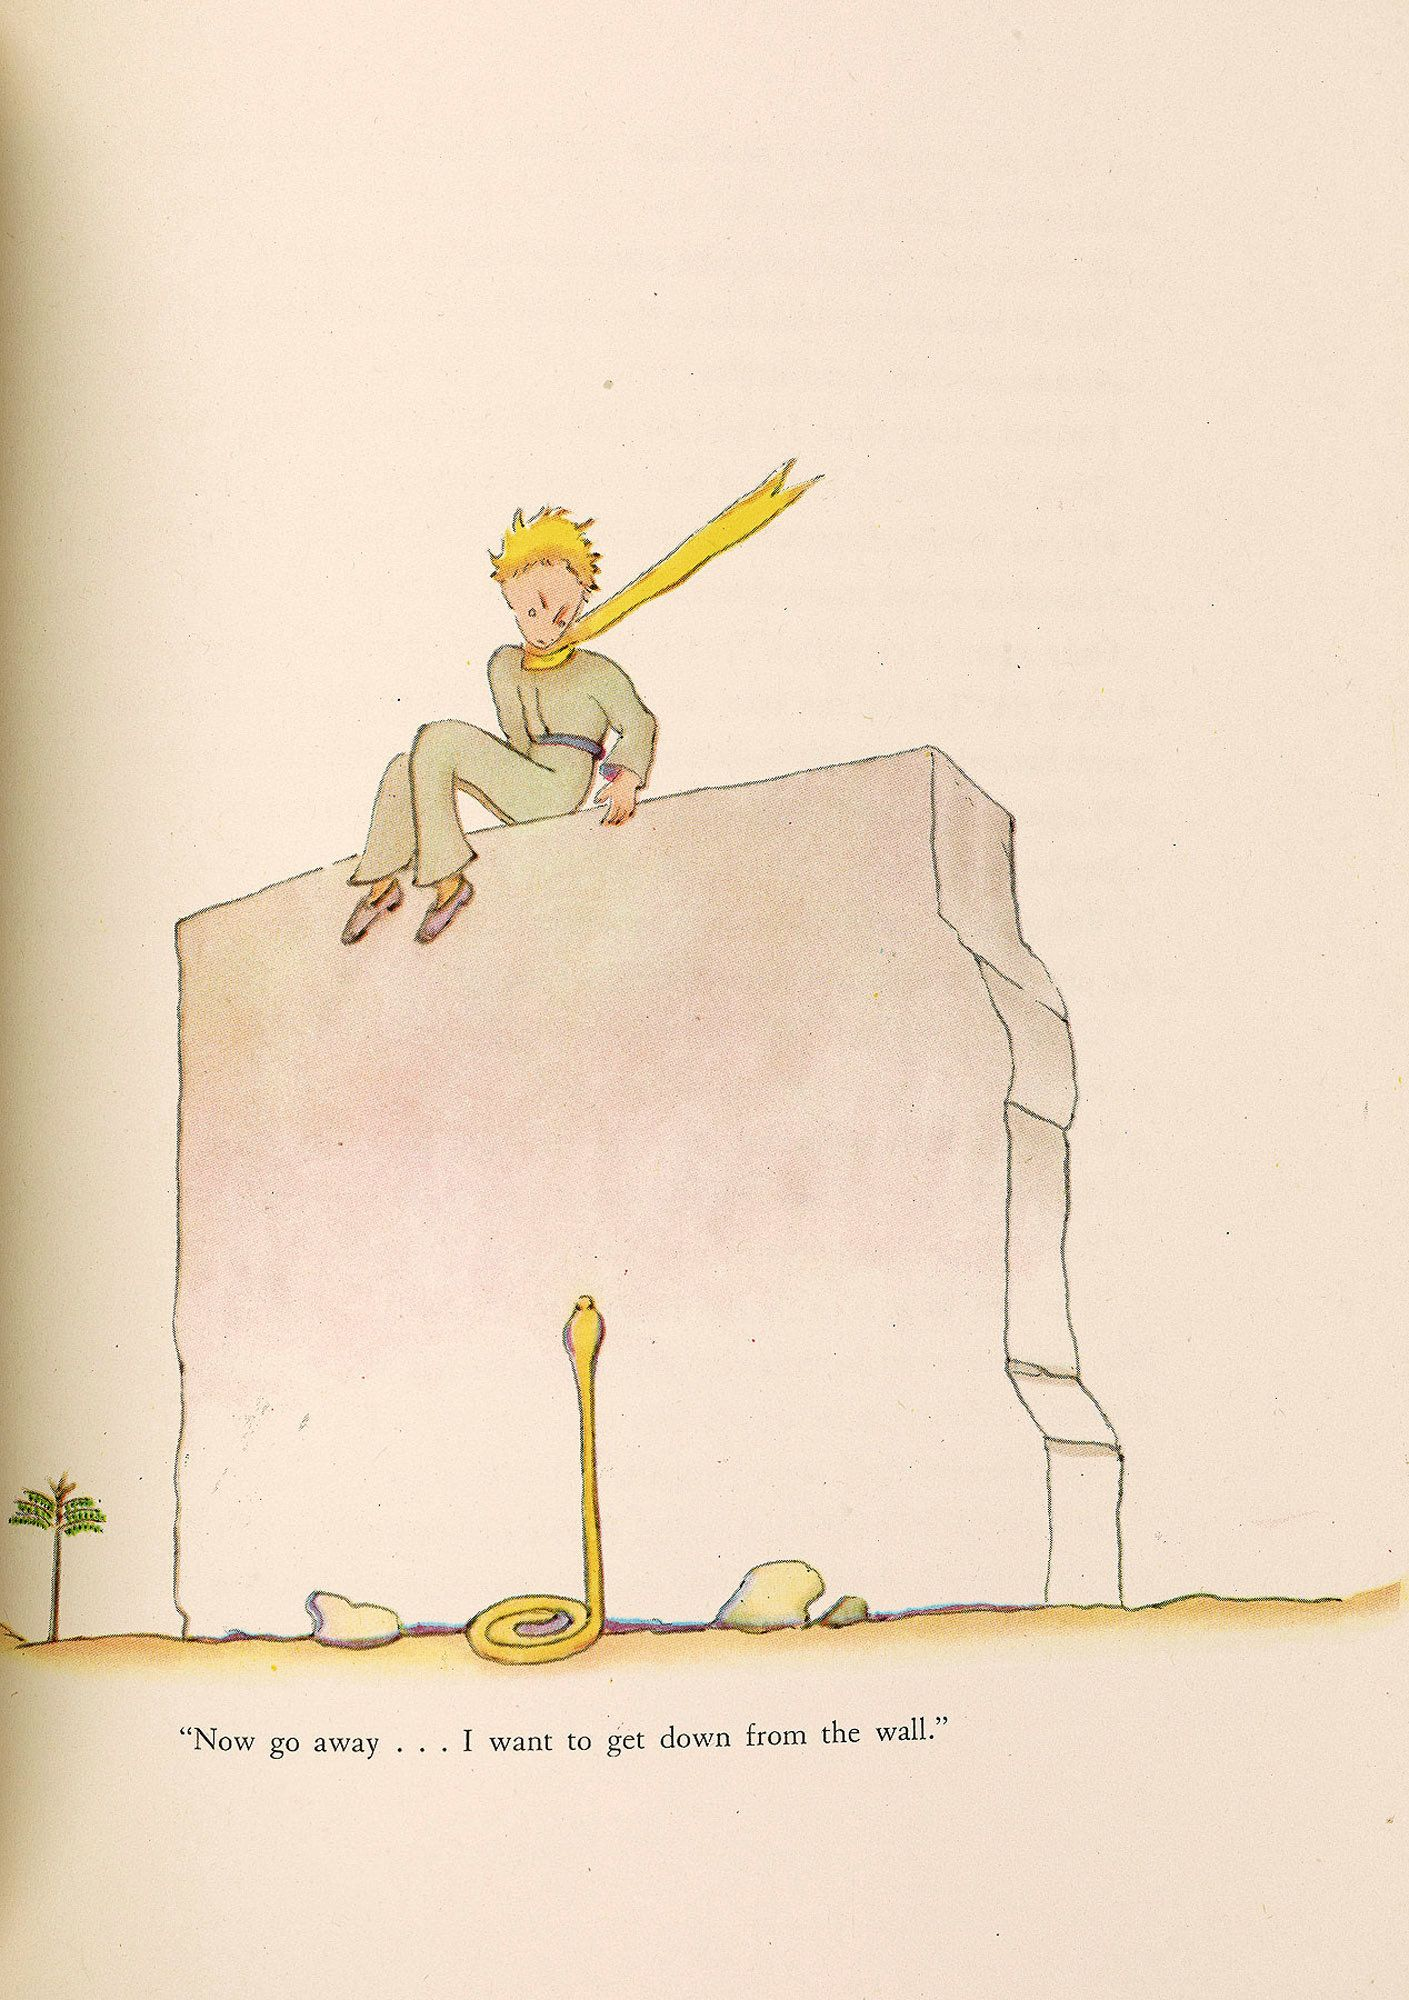 Little Prince New York 70 years on, magic concocted in exile | the little prince